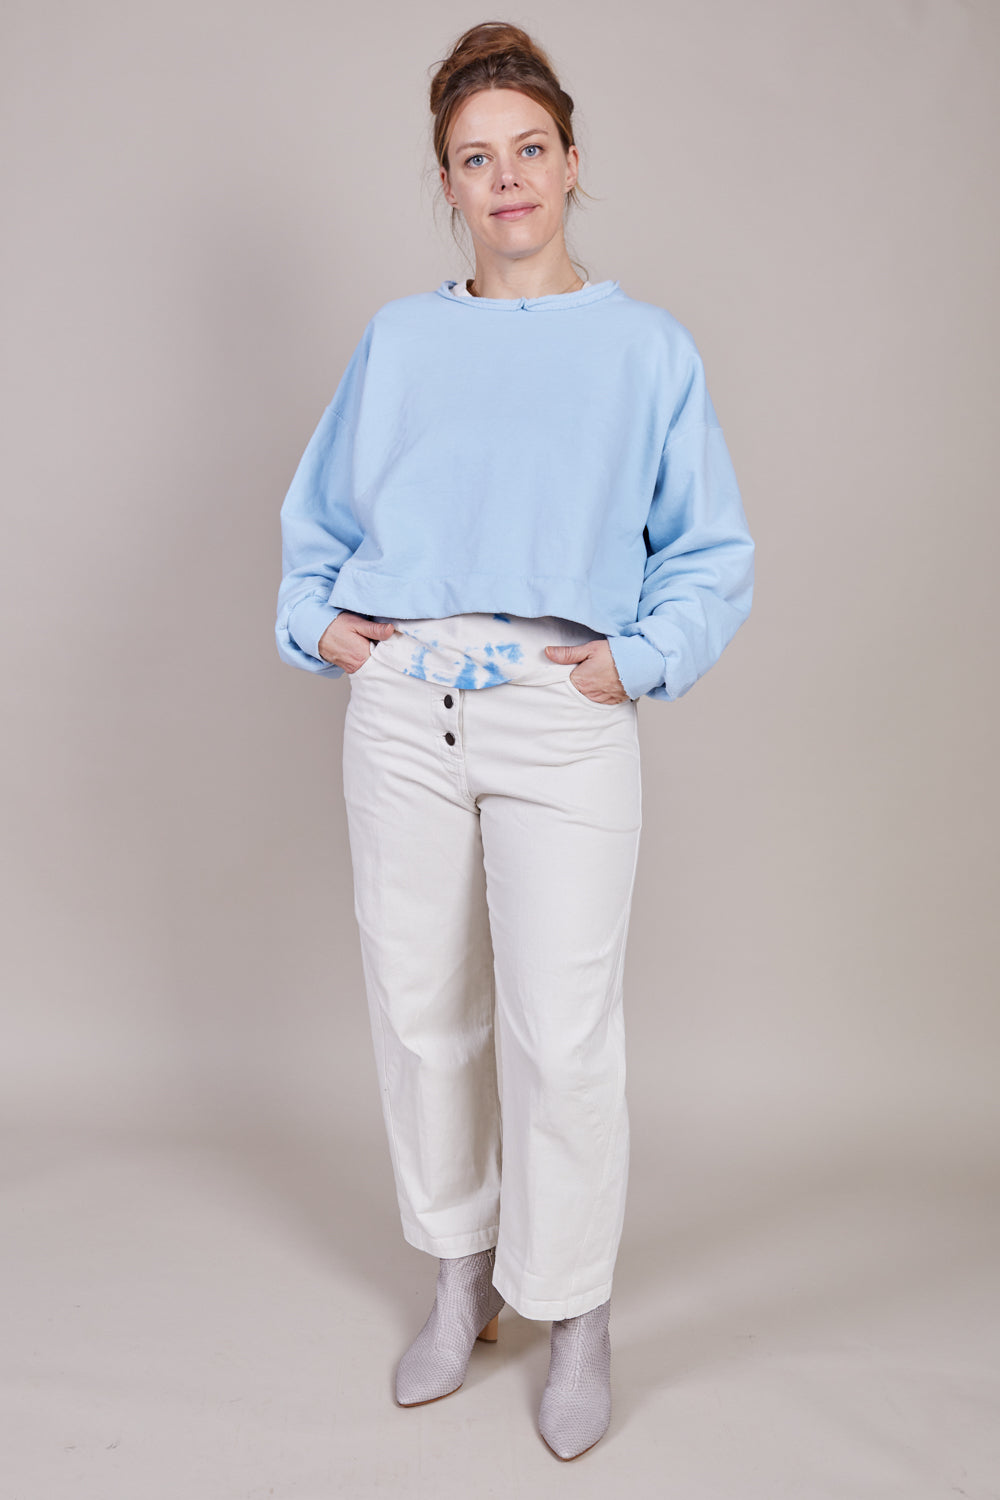 Mingle Sweatshirt in Sky Blue